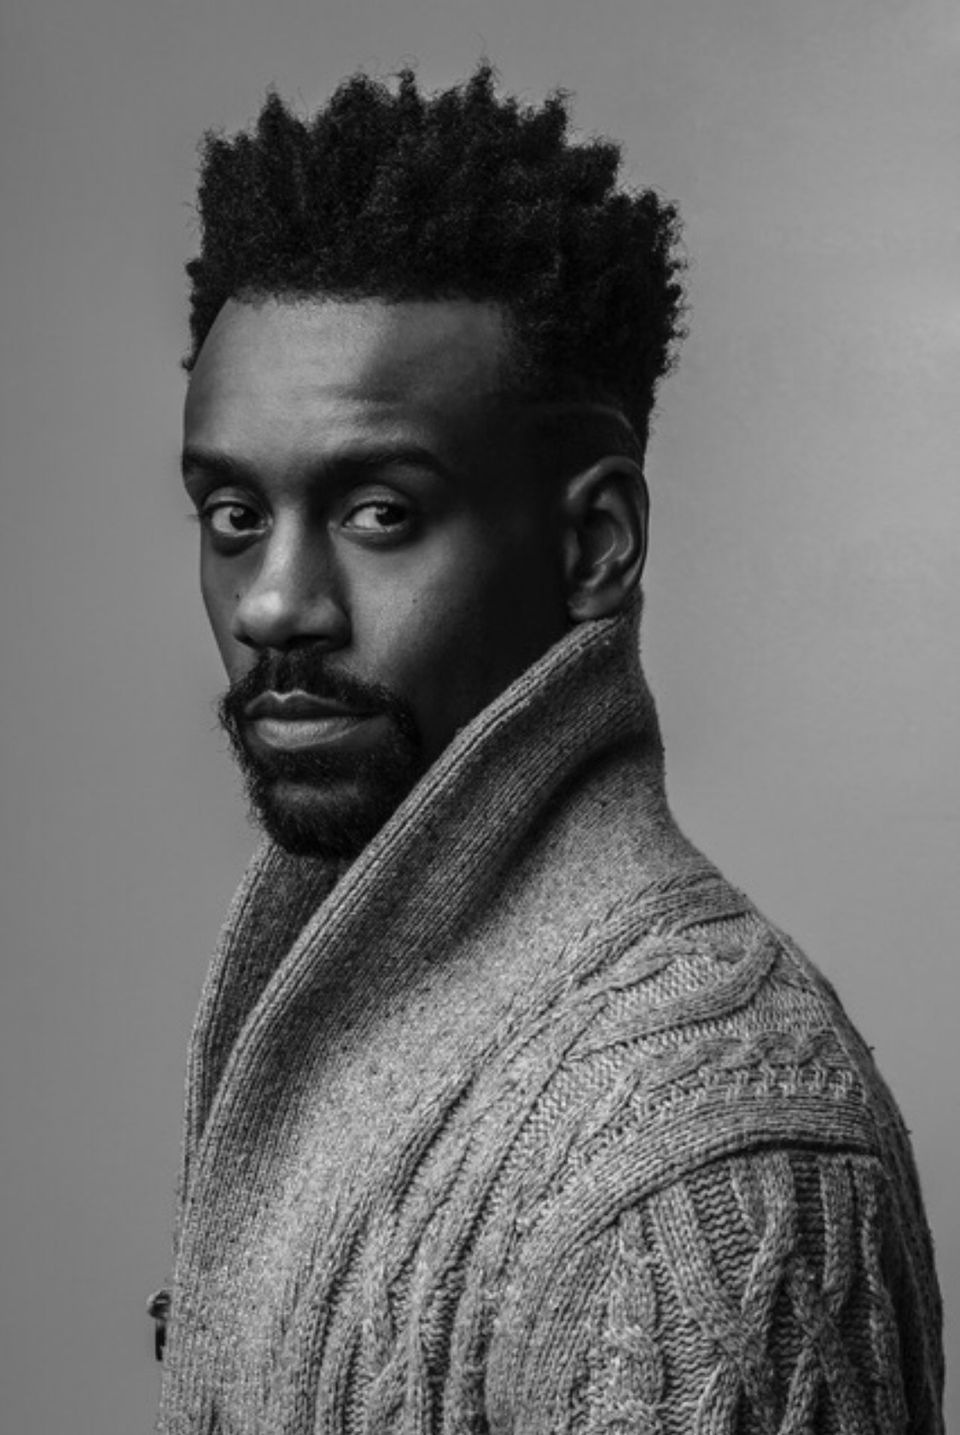 A black and white image of Kirvin in a cardigan.